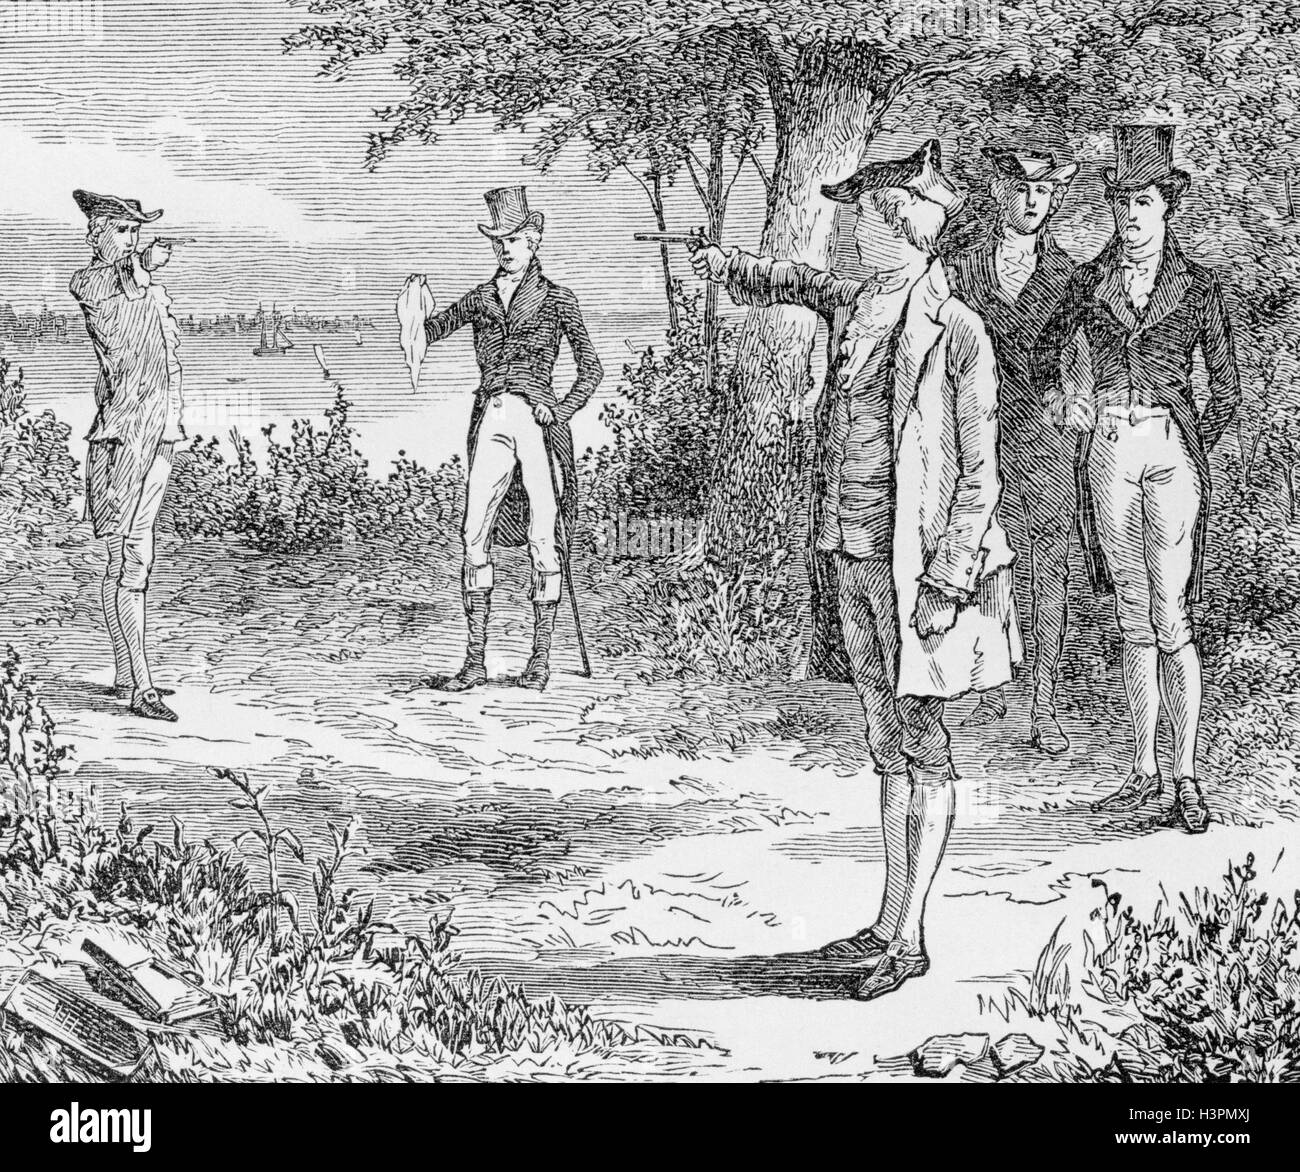 the duel between the alexander hamilton and aaron burr The duel between aaron burr and alexander hamilton is a famous piece of american history, which we are all taught in our history classes heretofore, burr has been painted as the fellow with the black hat and hamilton with the white hat.